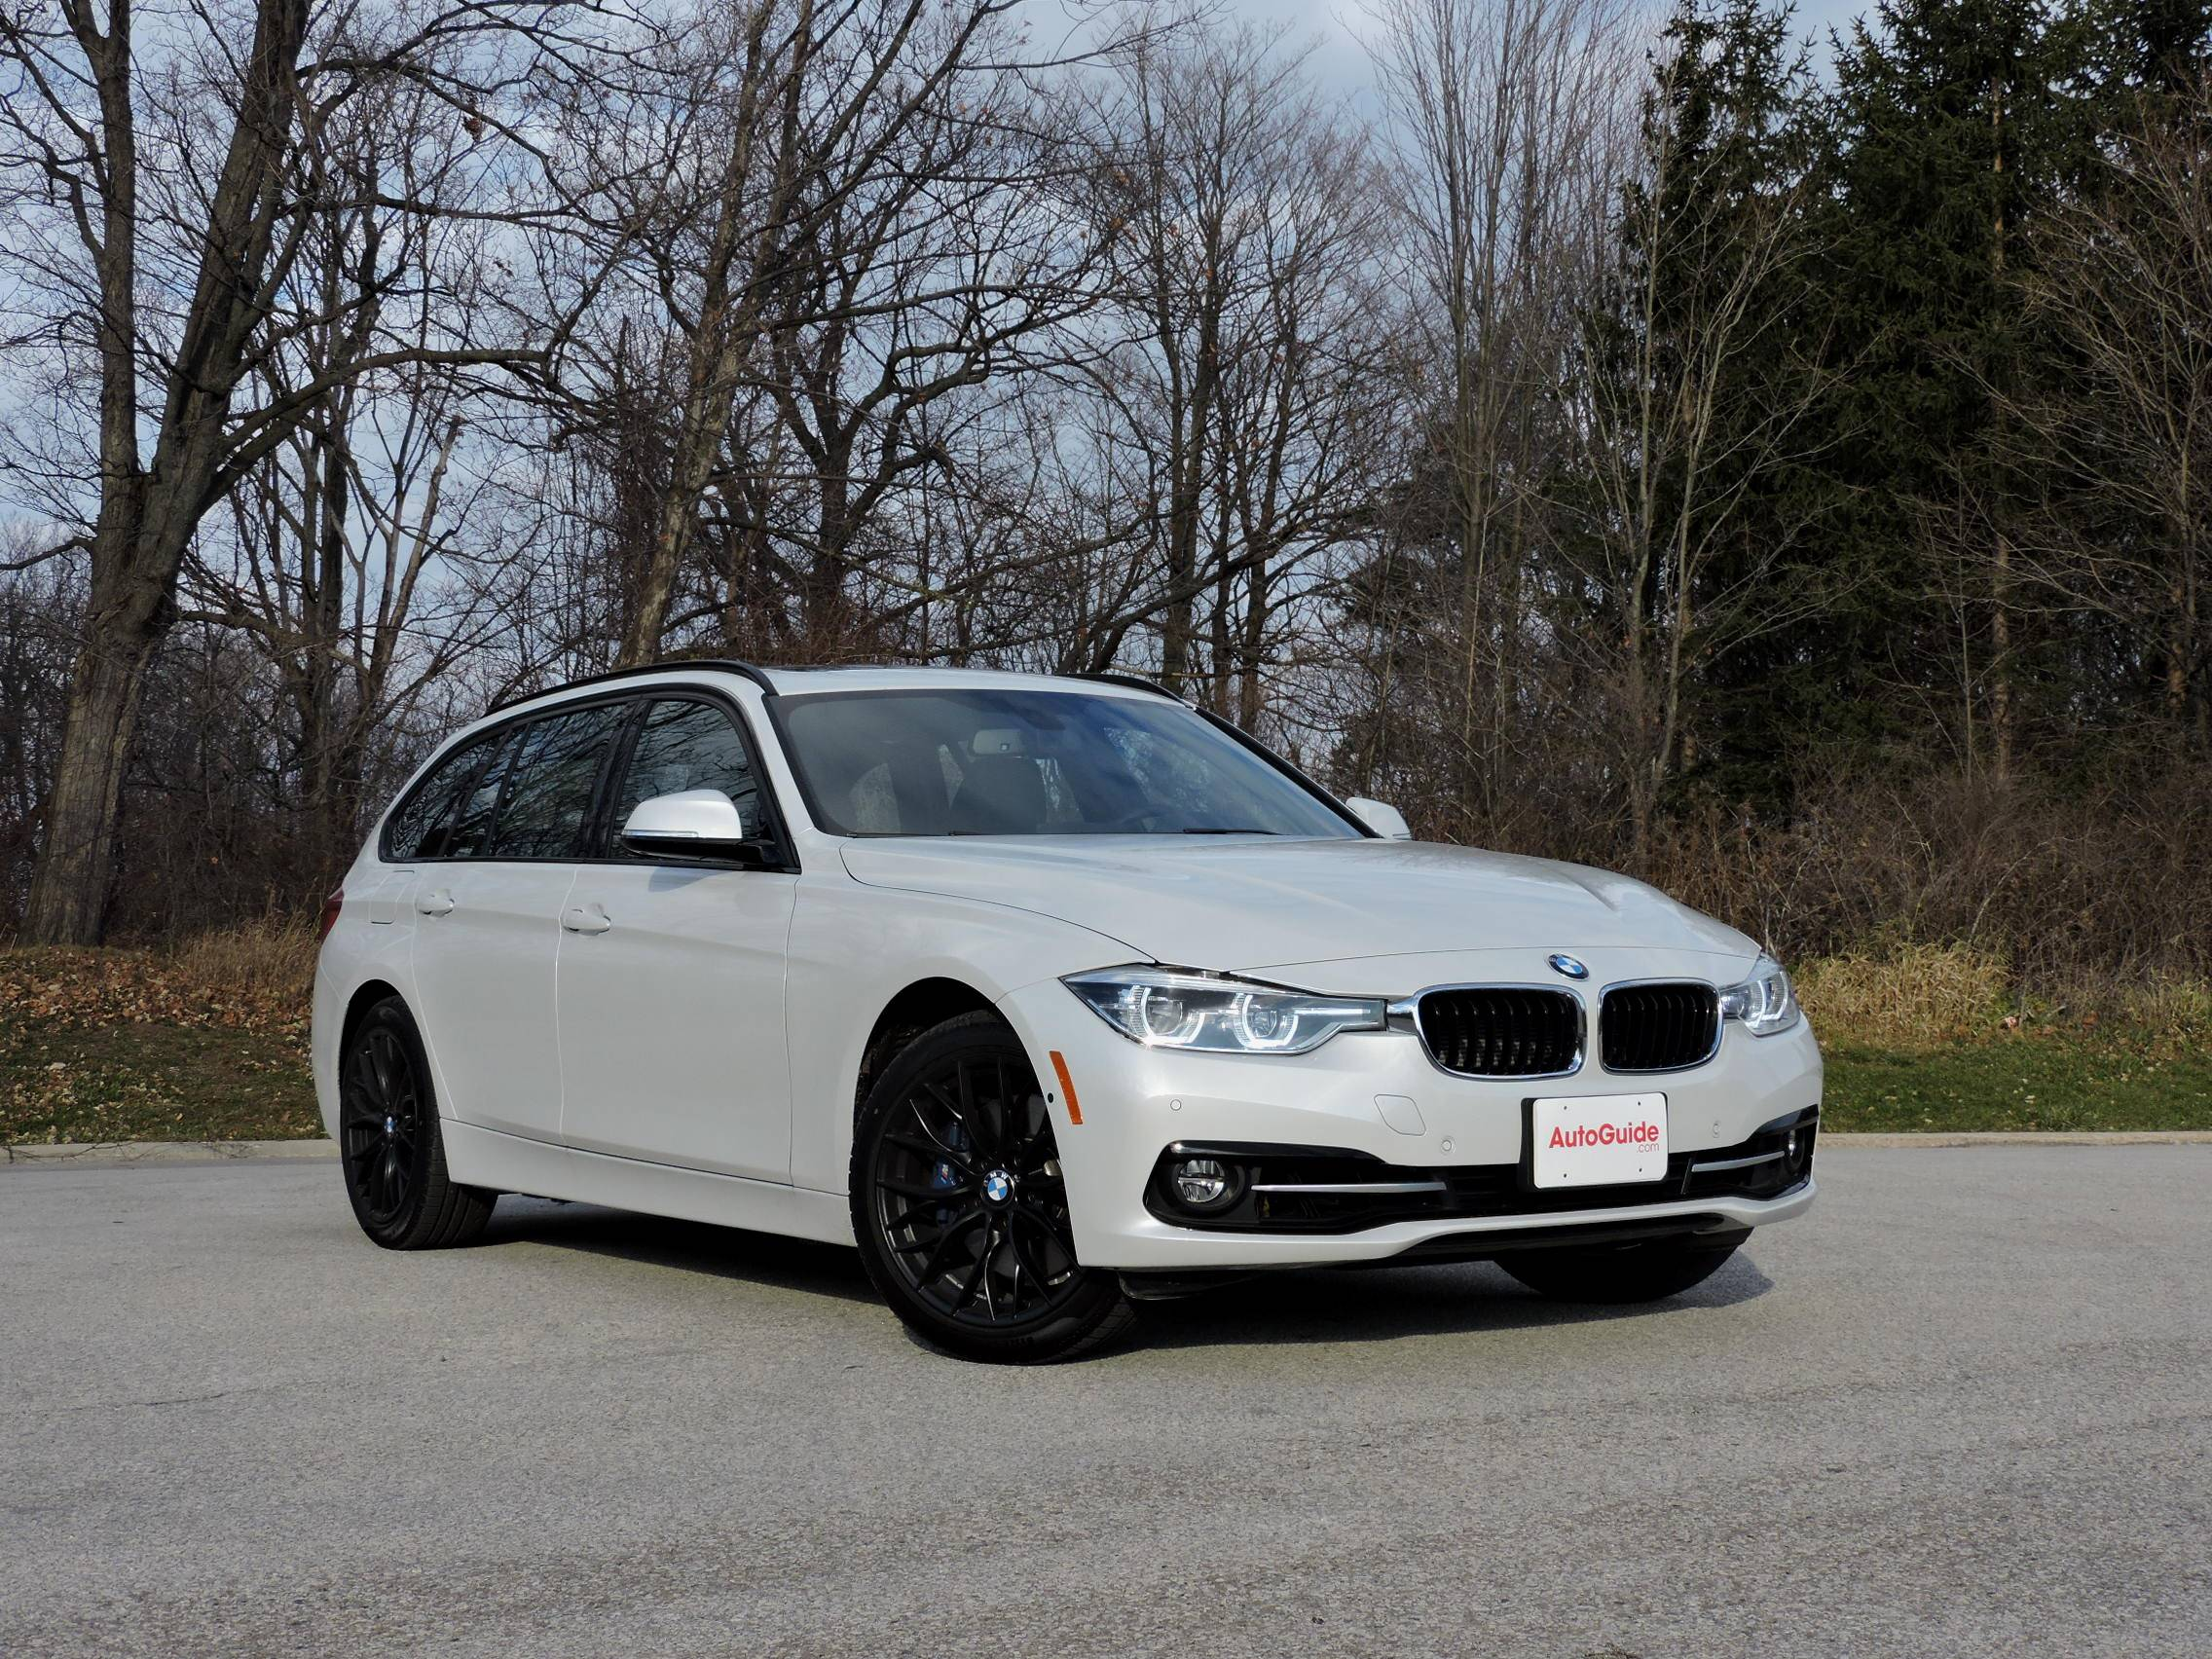 2016 Bmw 328i Xdrive Sports Wagon Review Autoguide Com News